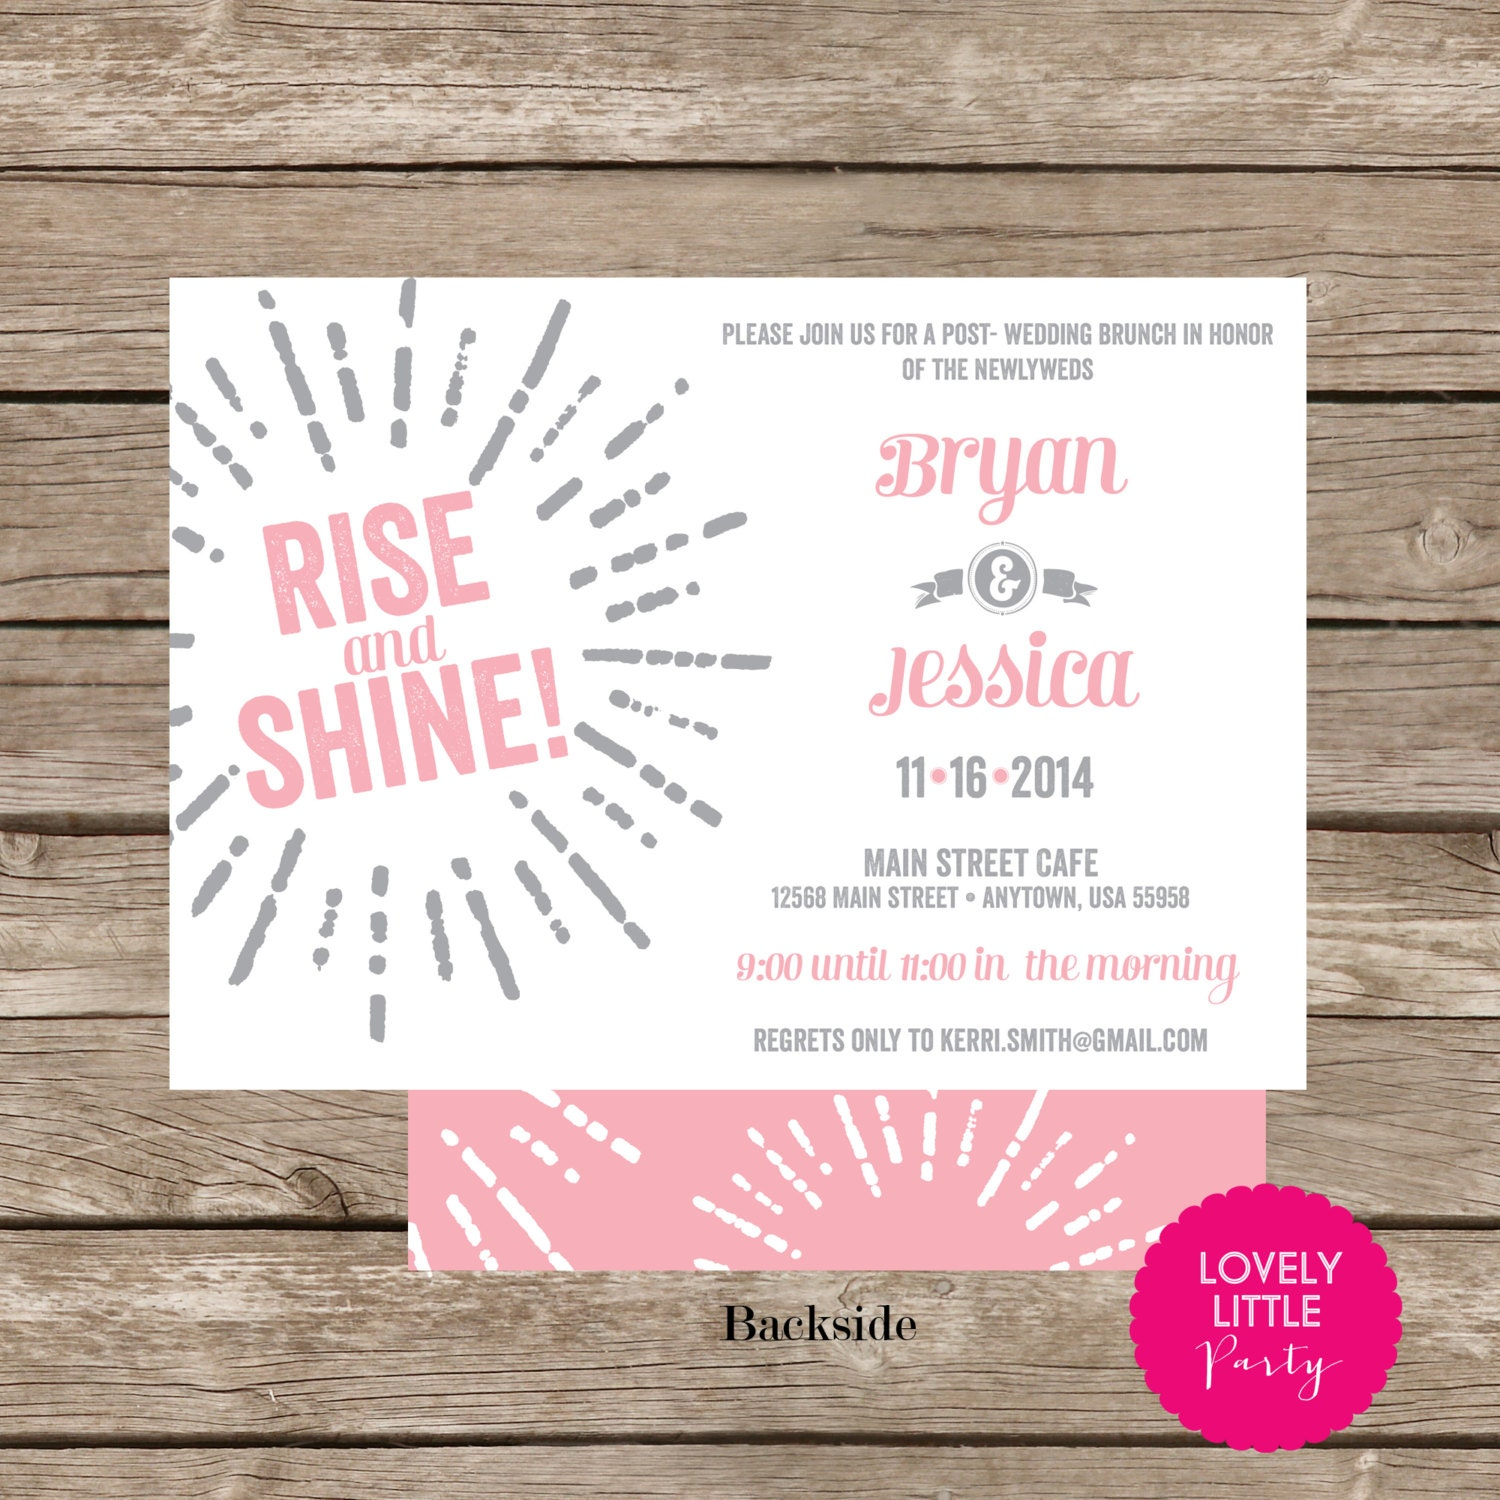 Starburst post wedding brunch breakfast invitation diy for Wedding brunch invitations